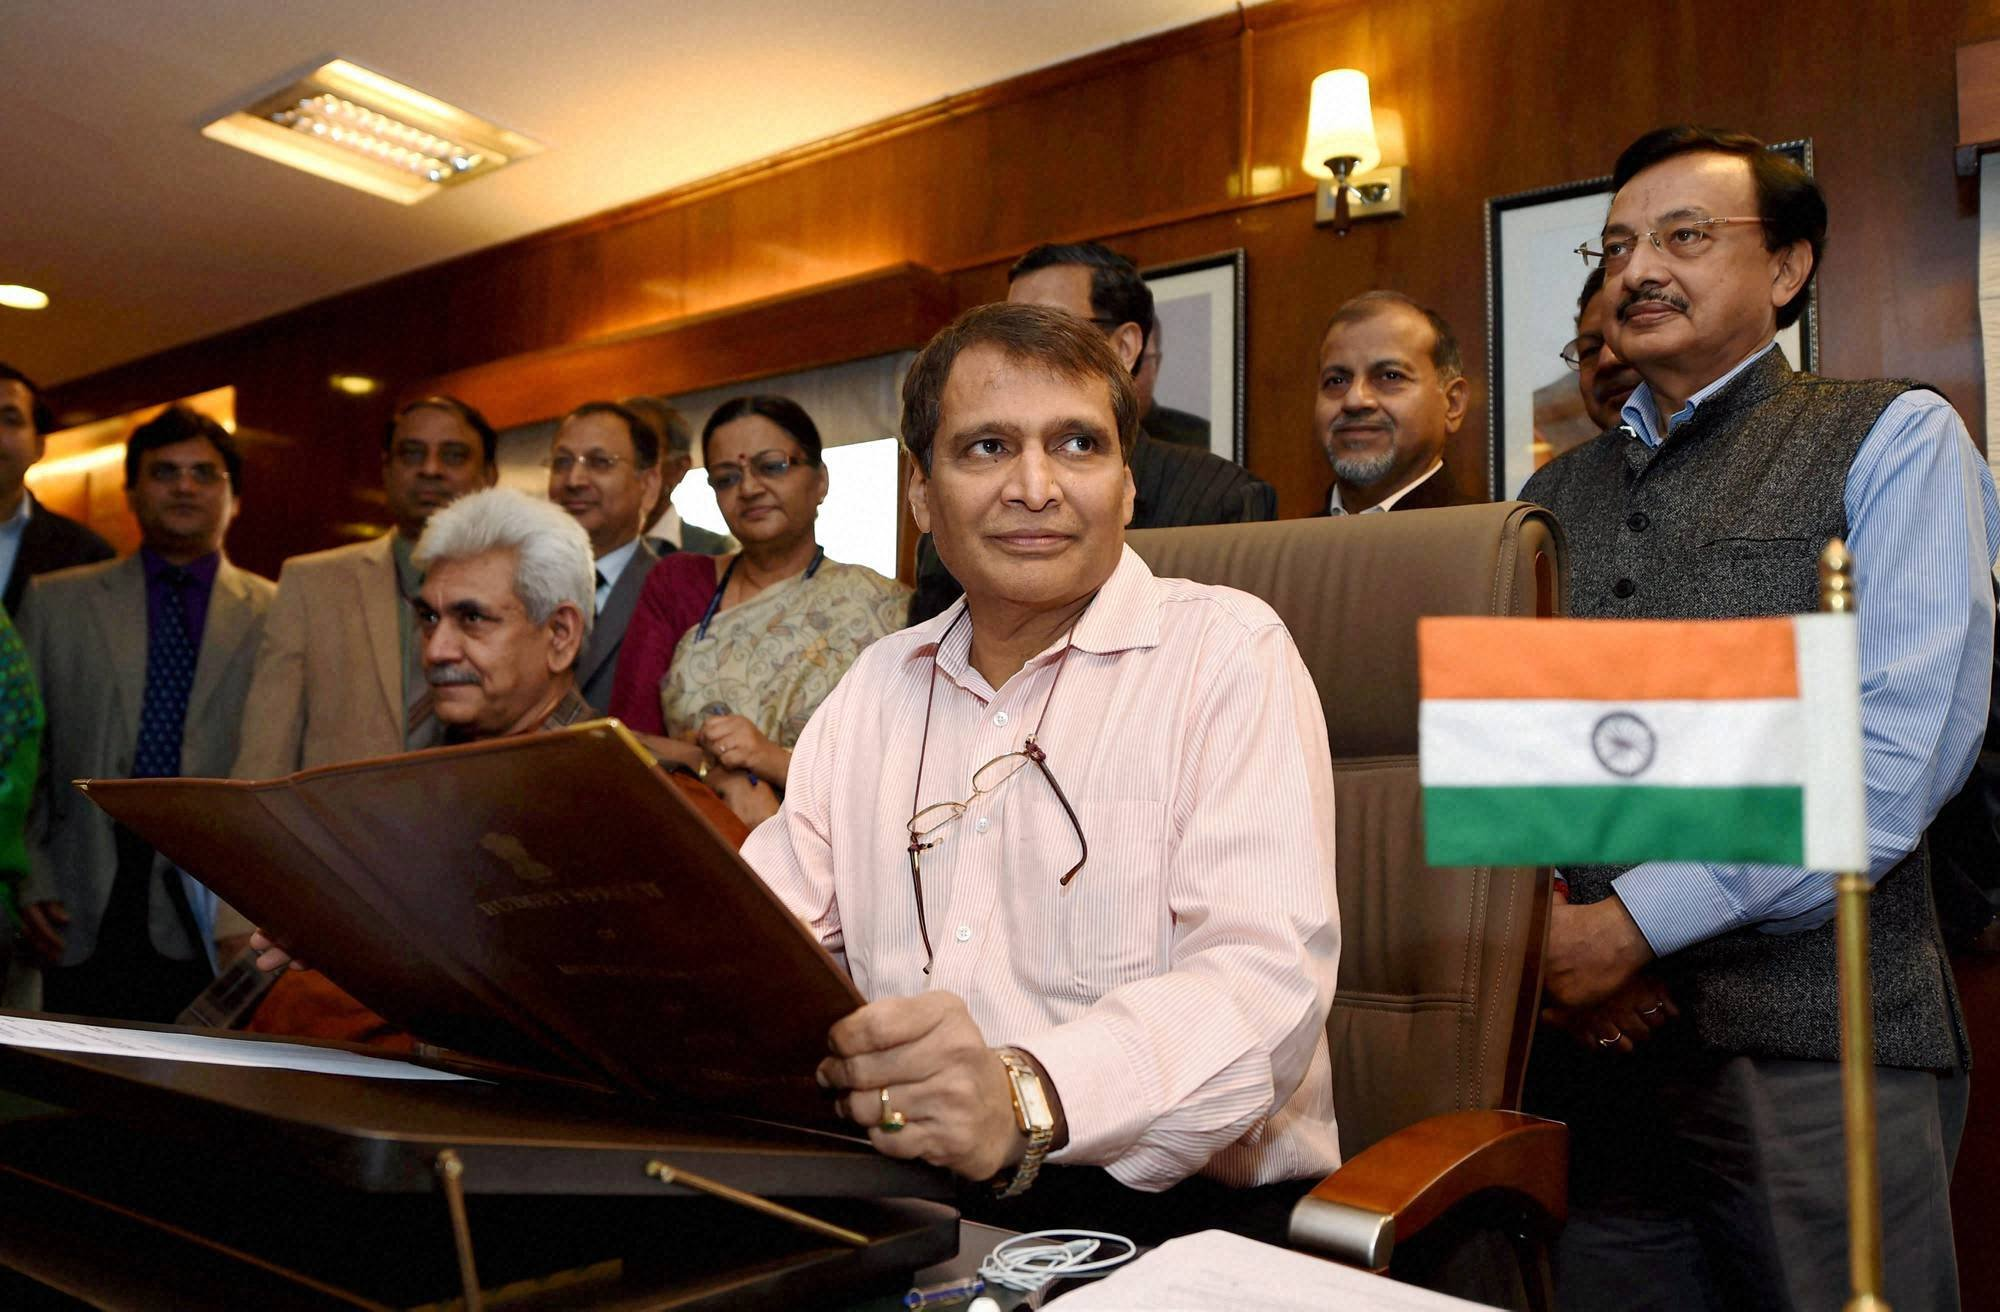 Indian Railways To Soon Go Completely Digital, Will Save About Rs. 60,000 Crore - Image 2